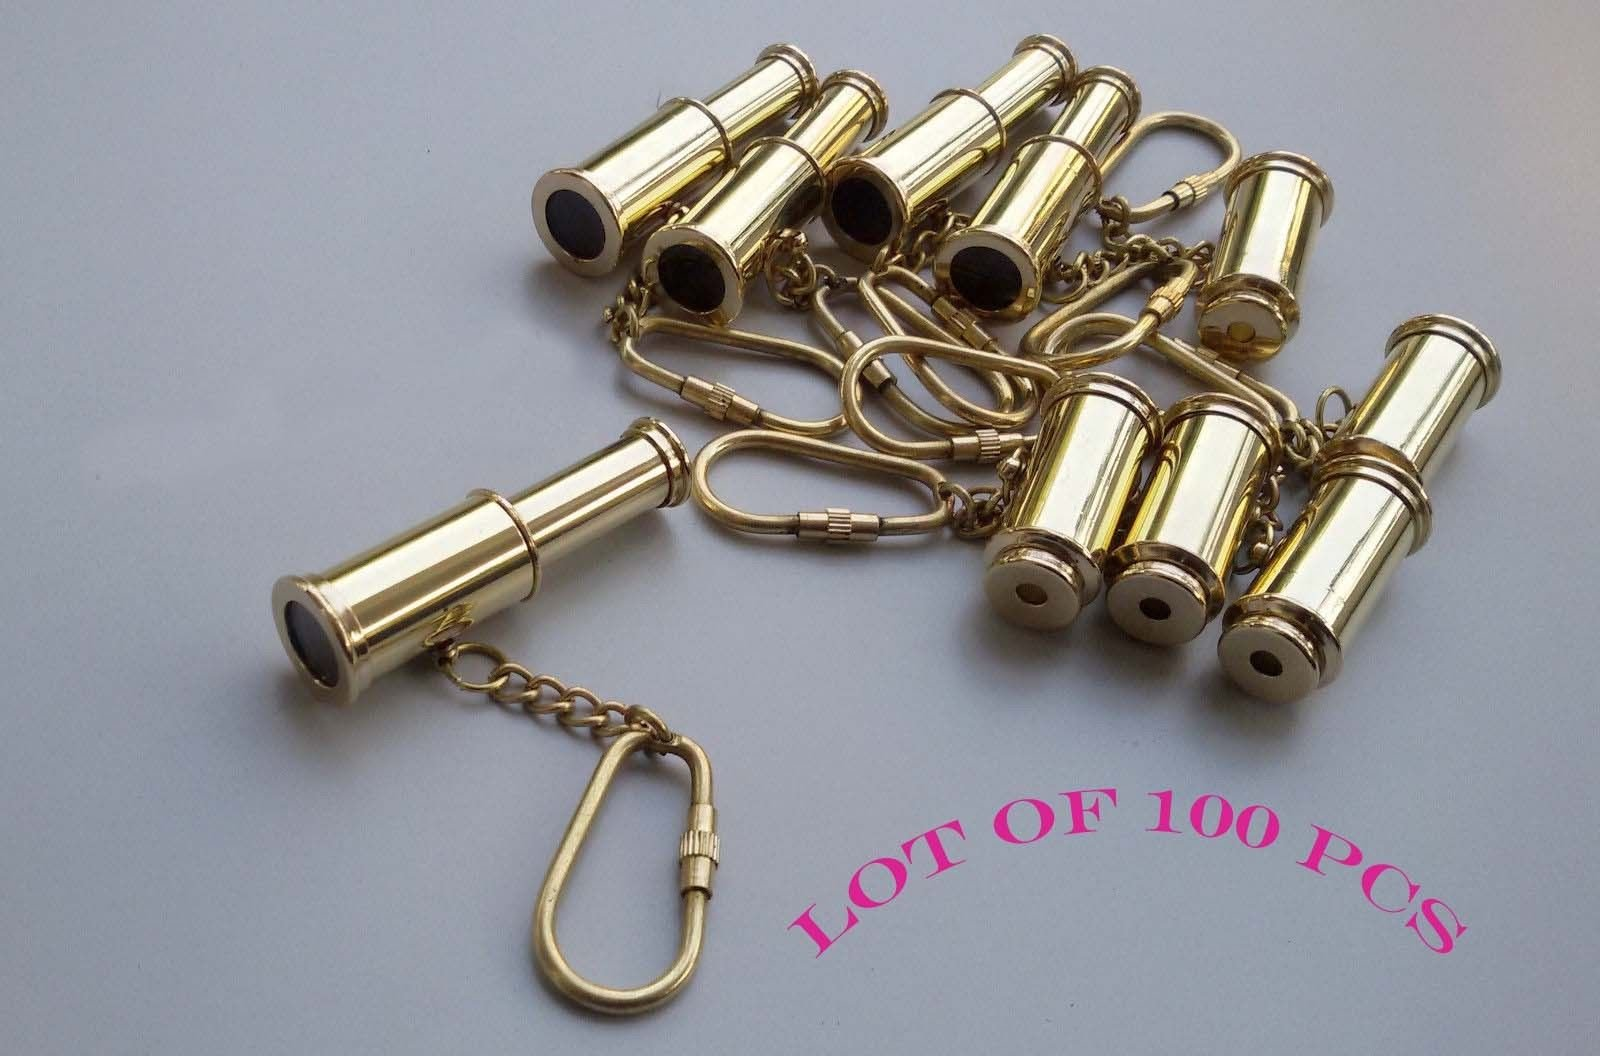 Shaheera Nautical Nautical Brass Telescope Key Chain Antique Handmade Key Ring Lot of 100 Pcs Gift B